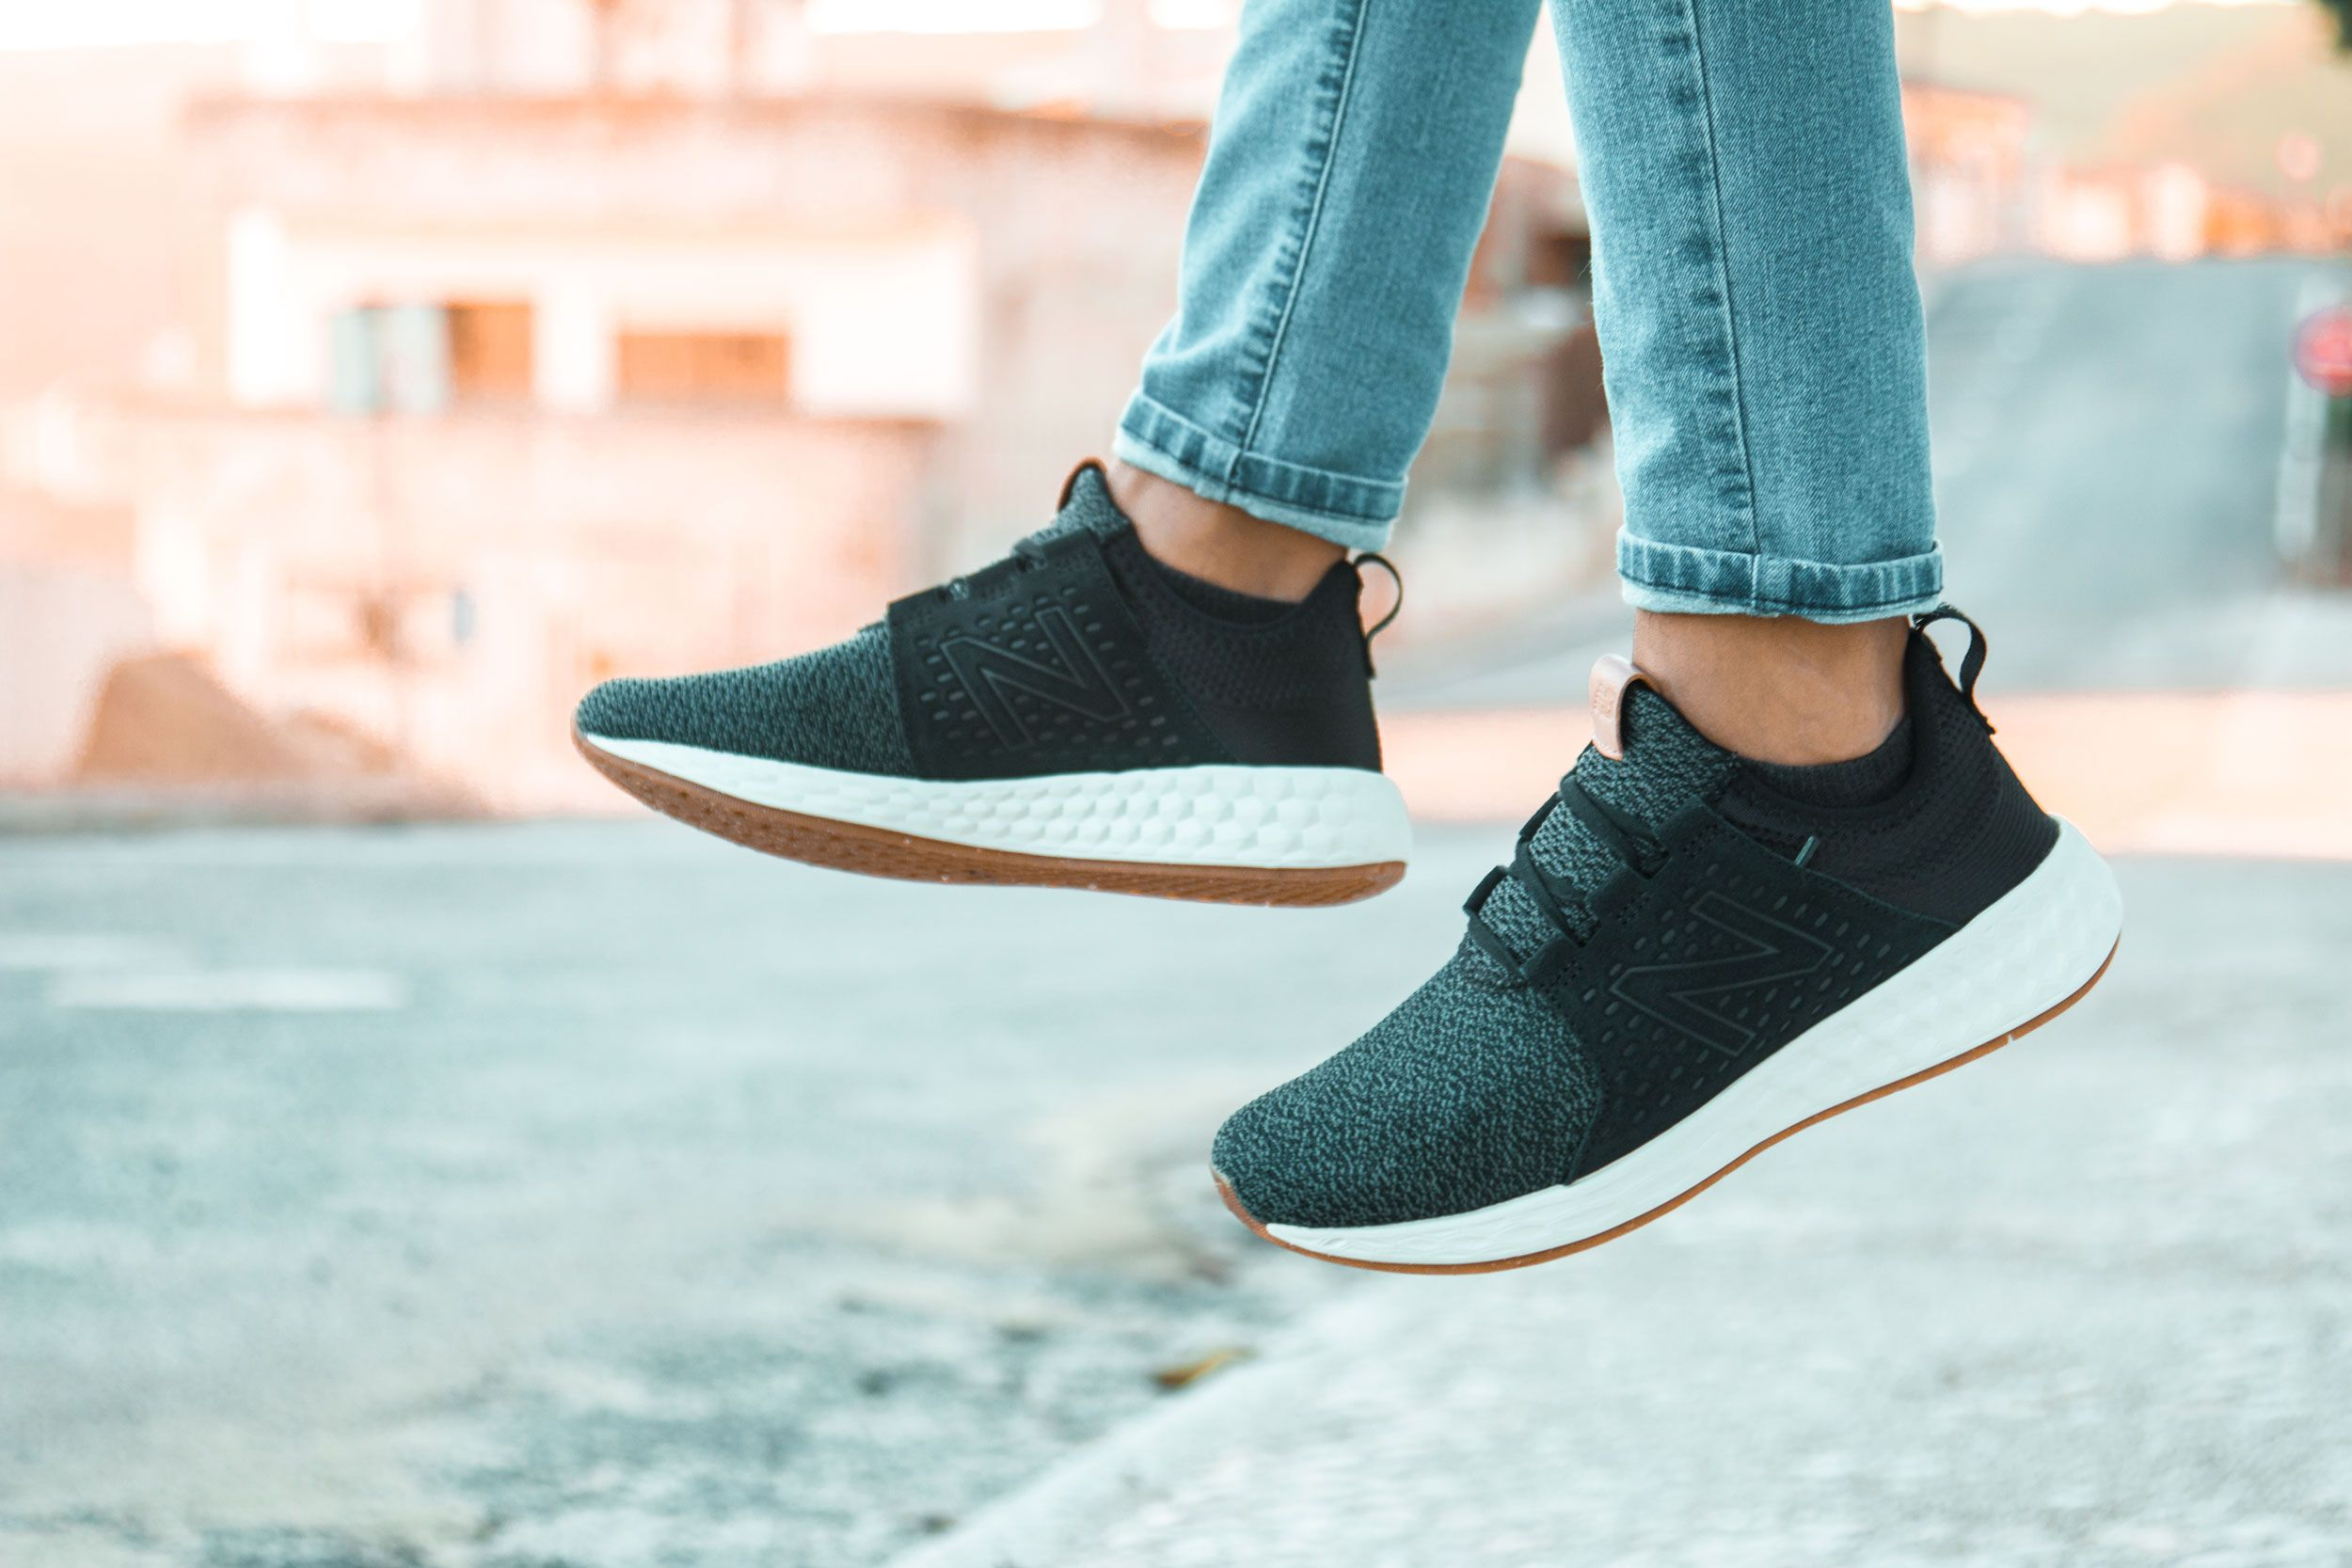 huge discount 08890 e6d24 New Balance Fresh Foam Cruz  newbalance  freshfoamcruz  newbalanceboy  boy   tumblr  tumblrshoes  tumblrboy  men